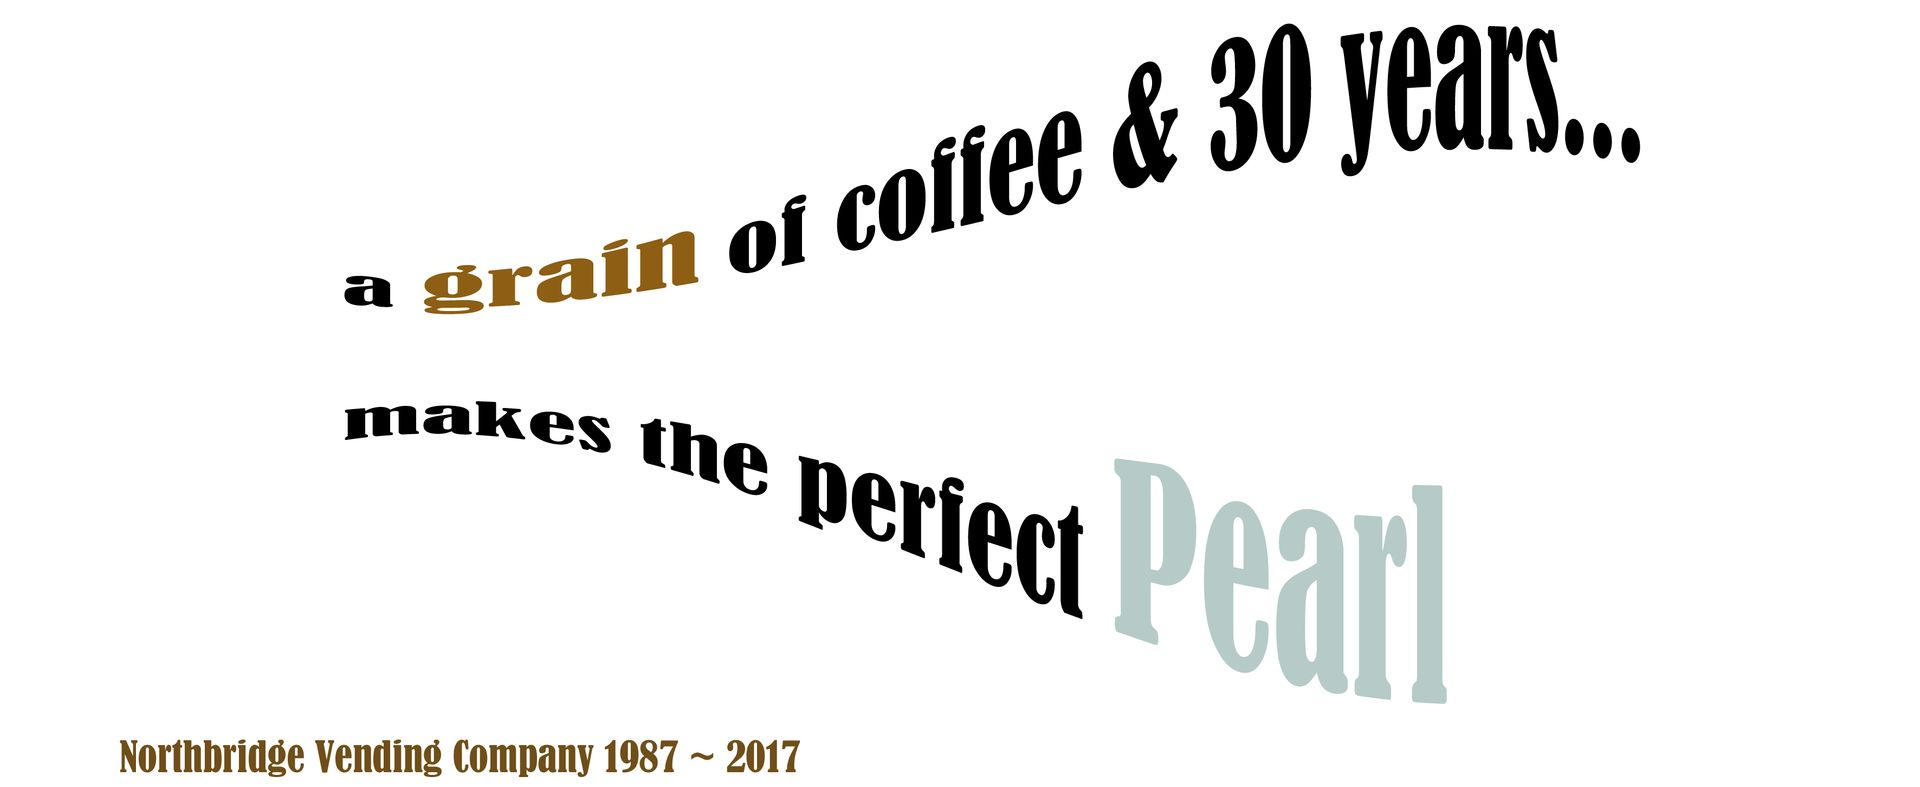 pearl anniversary text indicating 30 years in operation